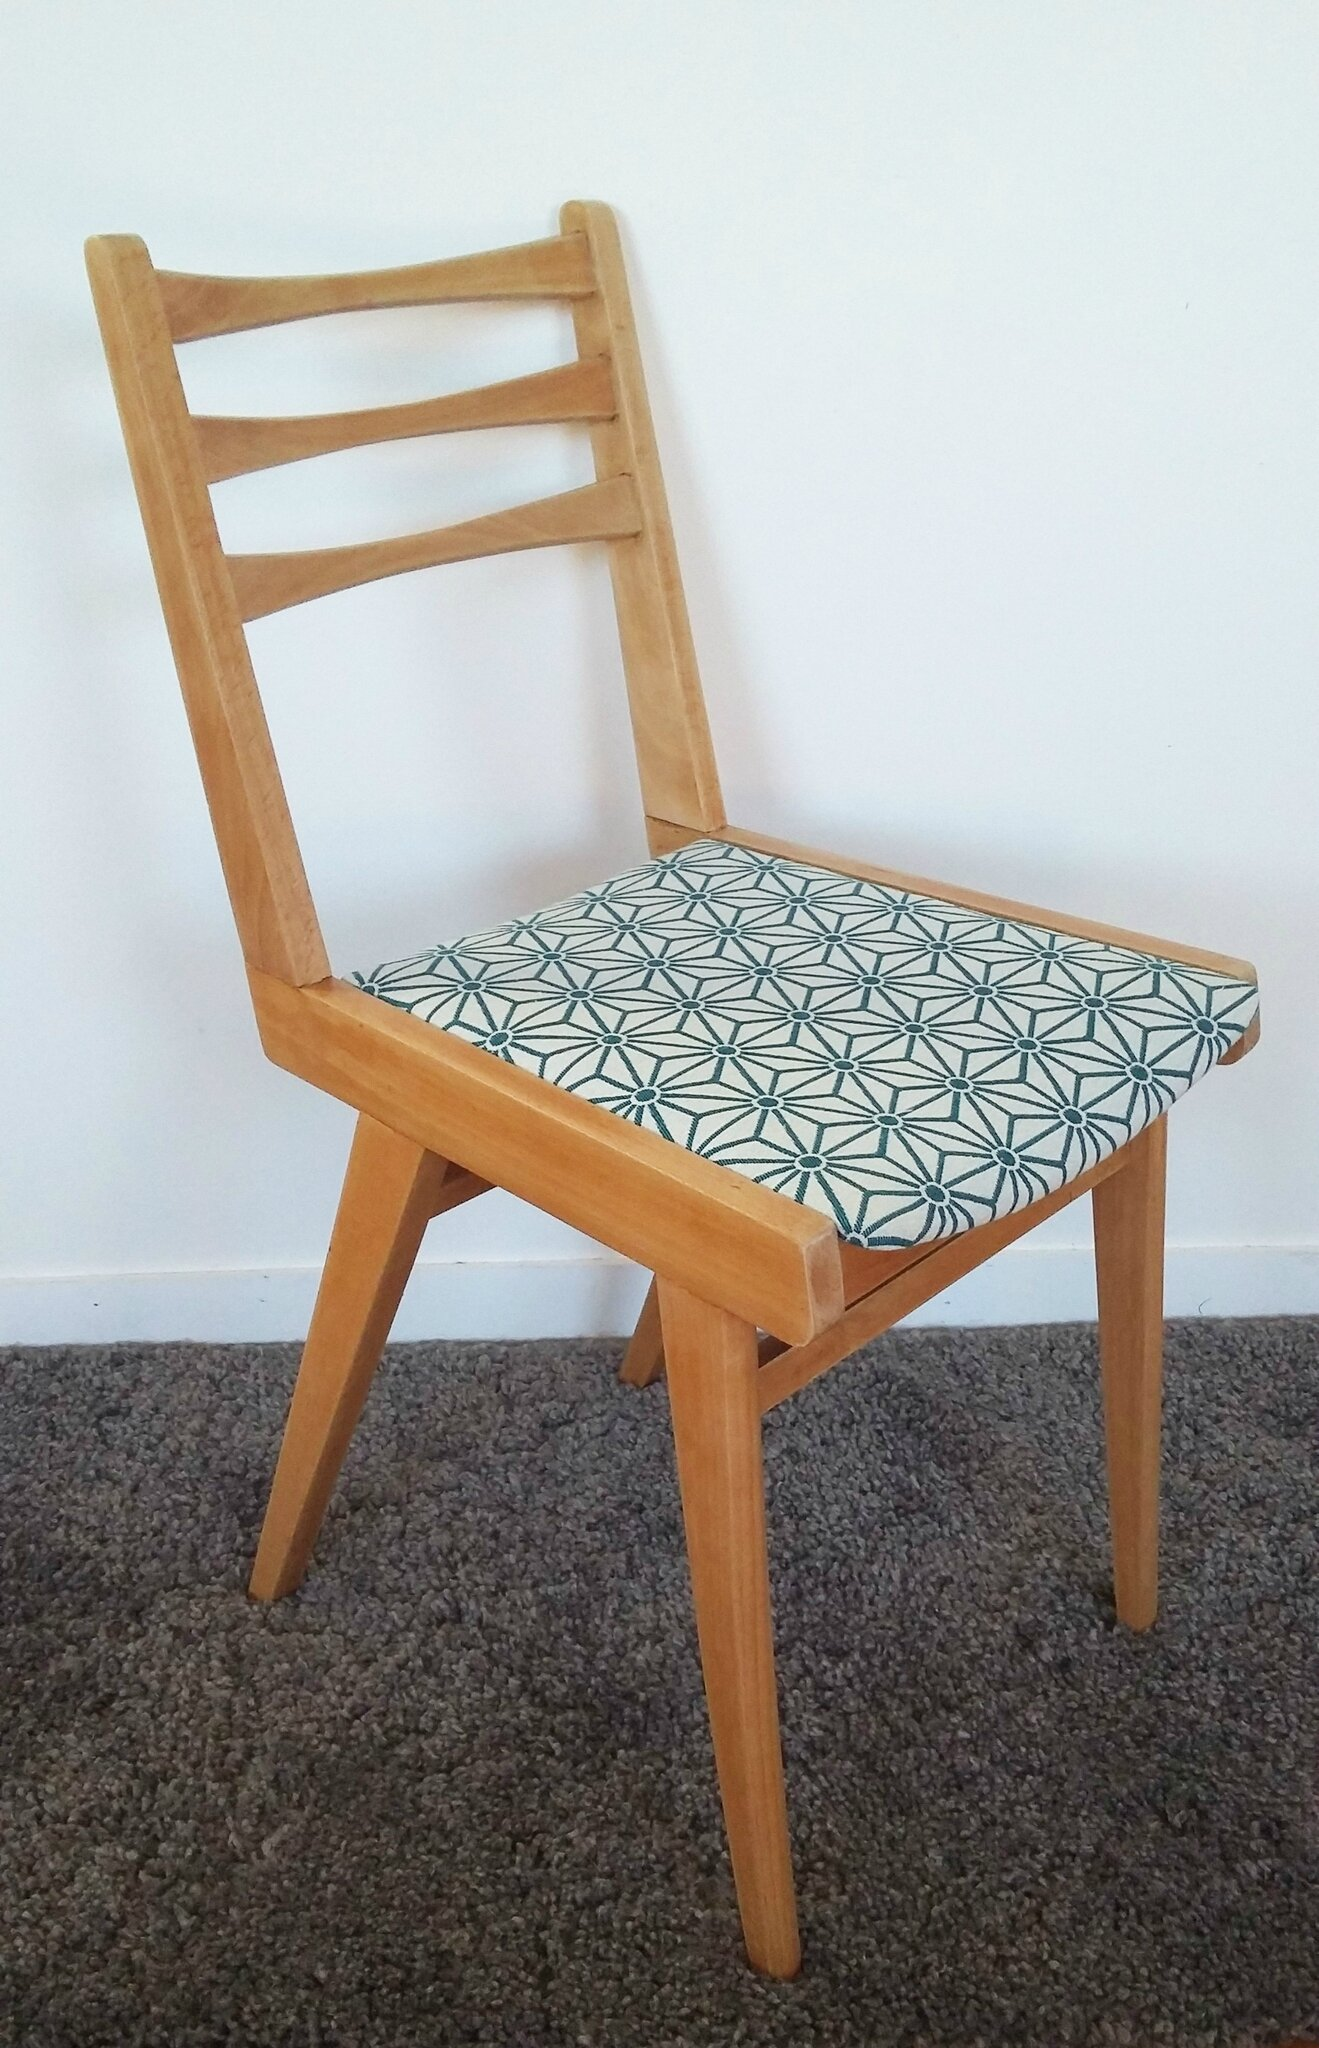 Chaise vintage style scandinave tissus graphique